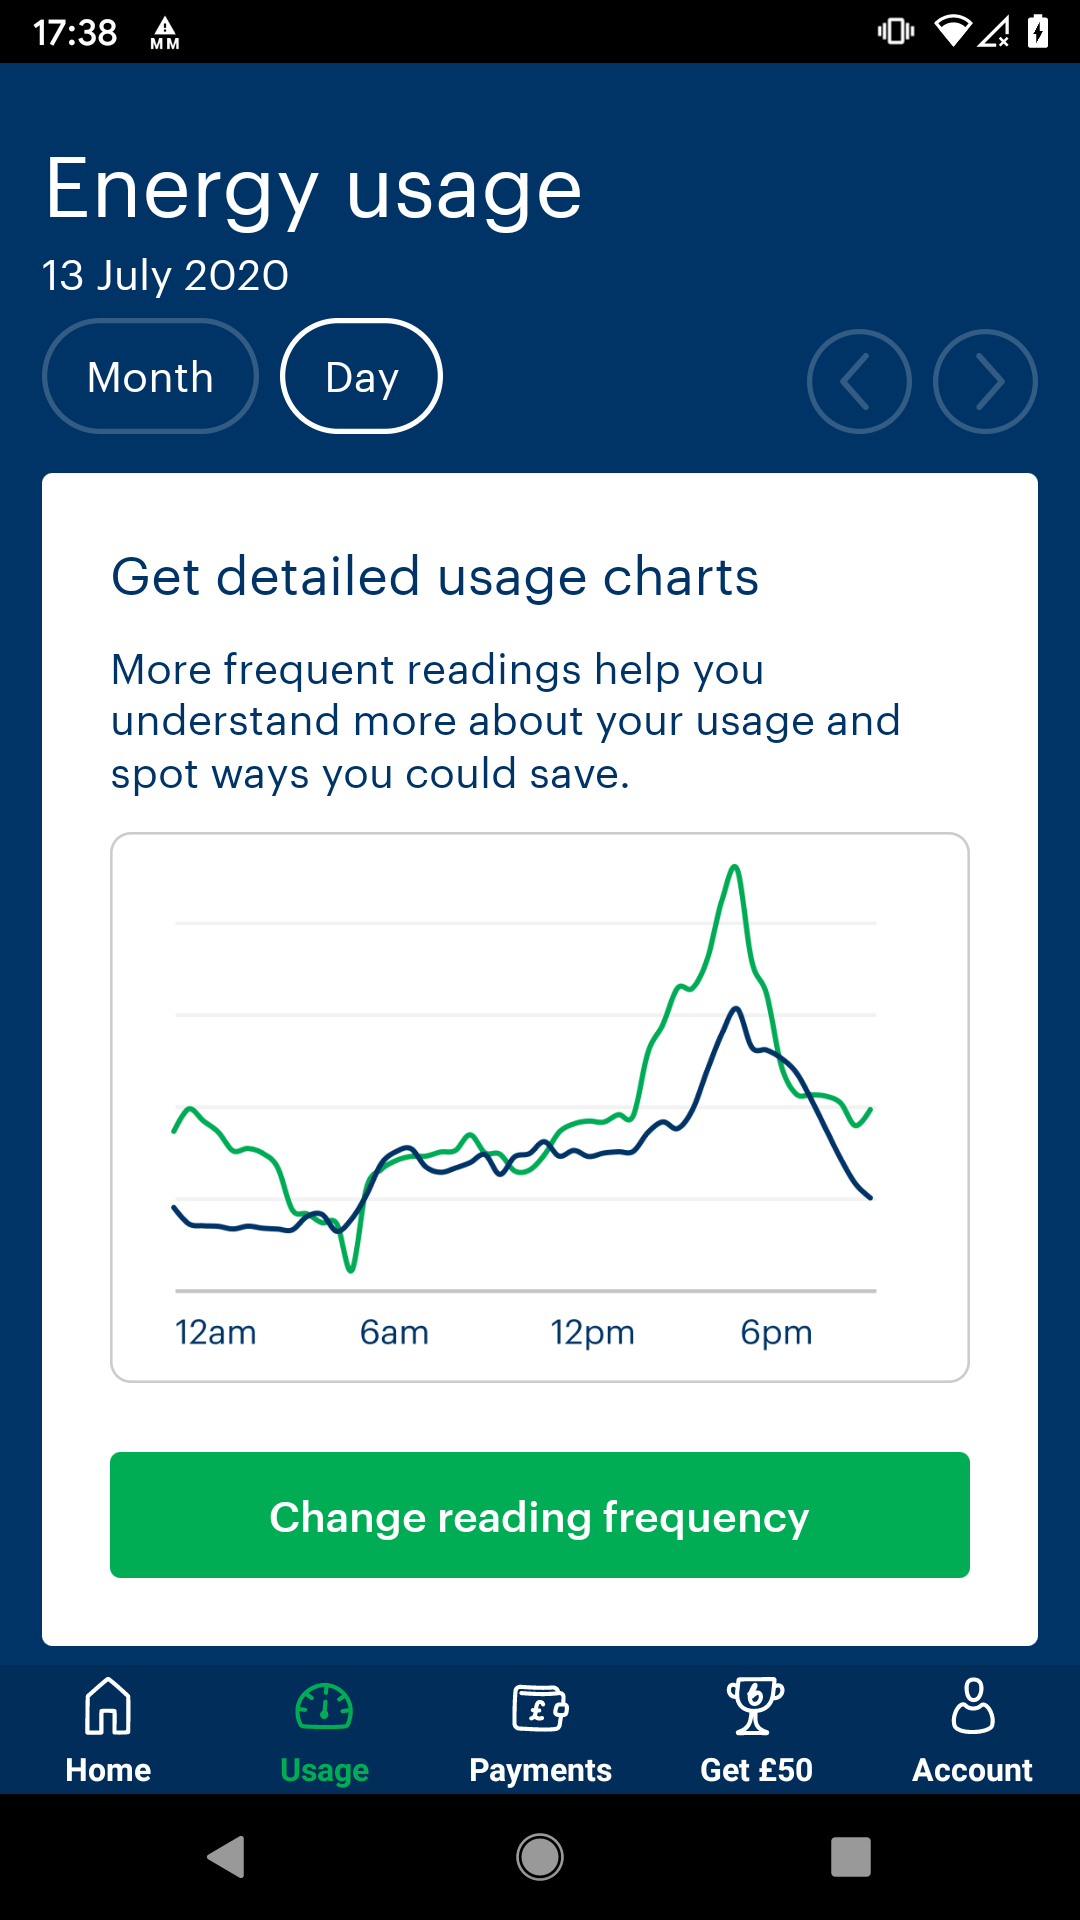 An example of a line graph in the app, with a button below prompting you to 'Change reading frequency'.